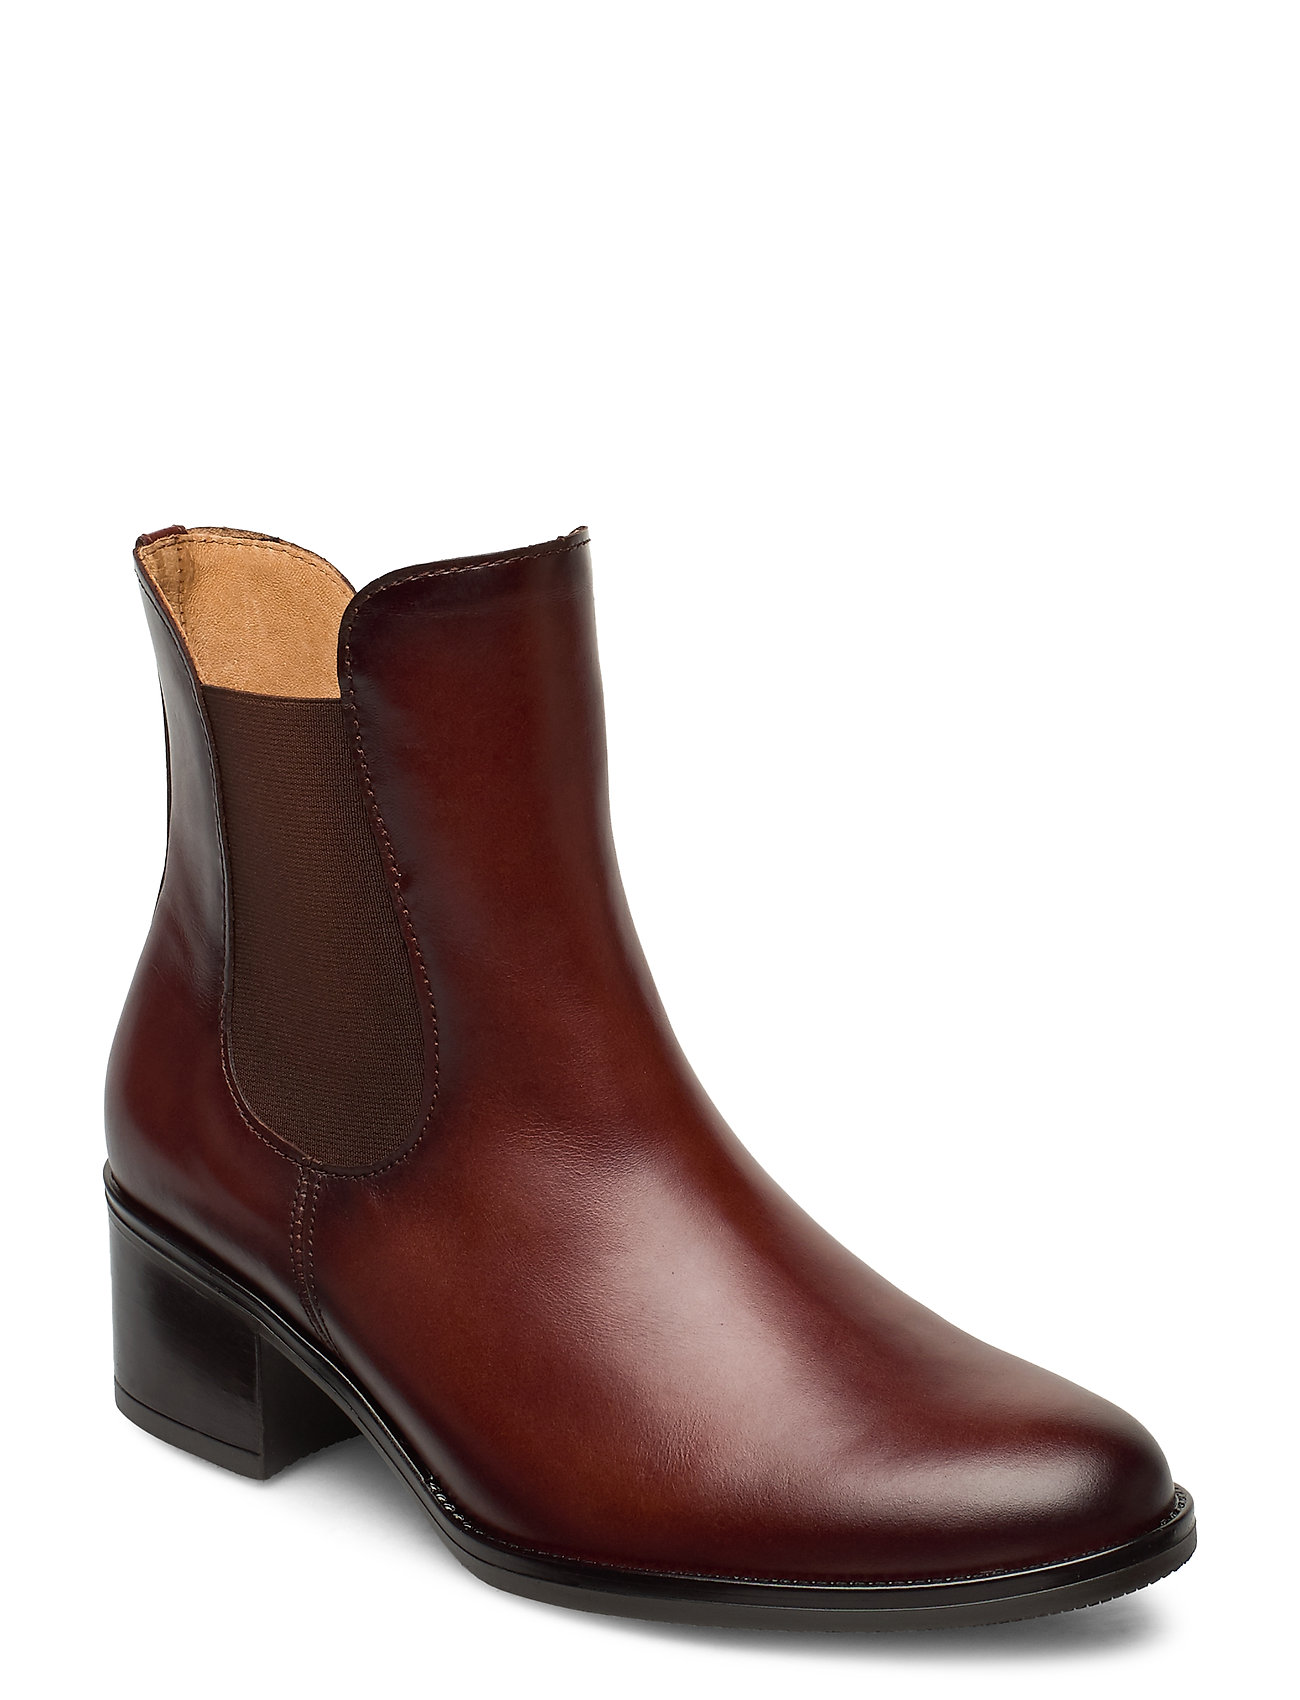 Image of Ankle Boot Shoes Boots Ankle Boots Ankle Boot - Heel Brun Gabor (3435437155)